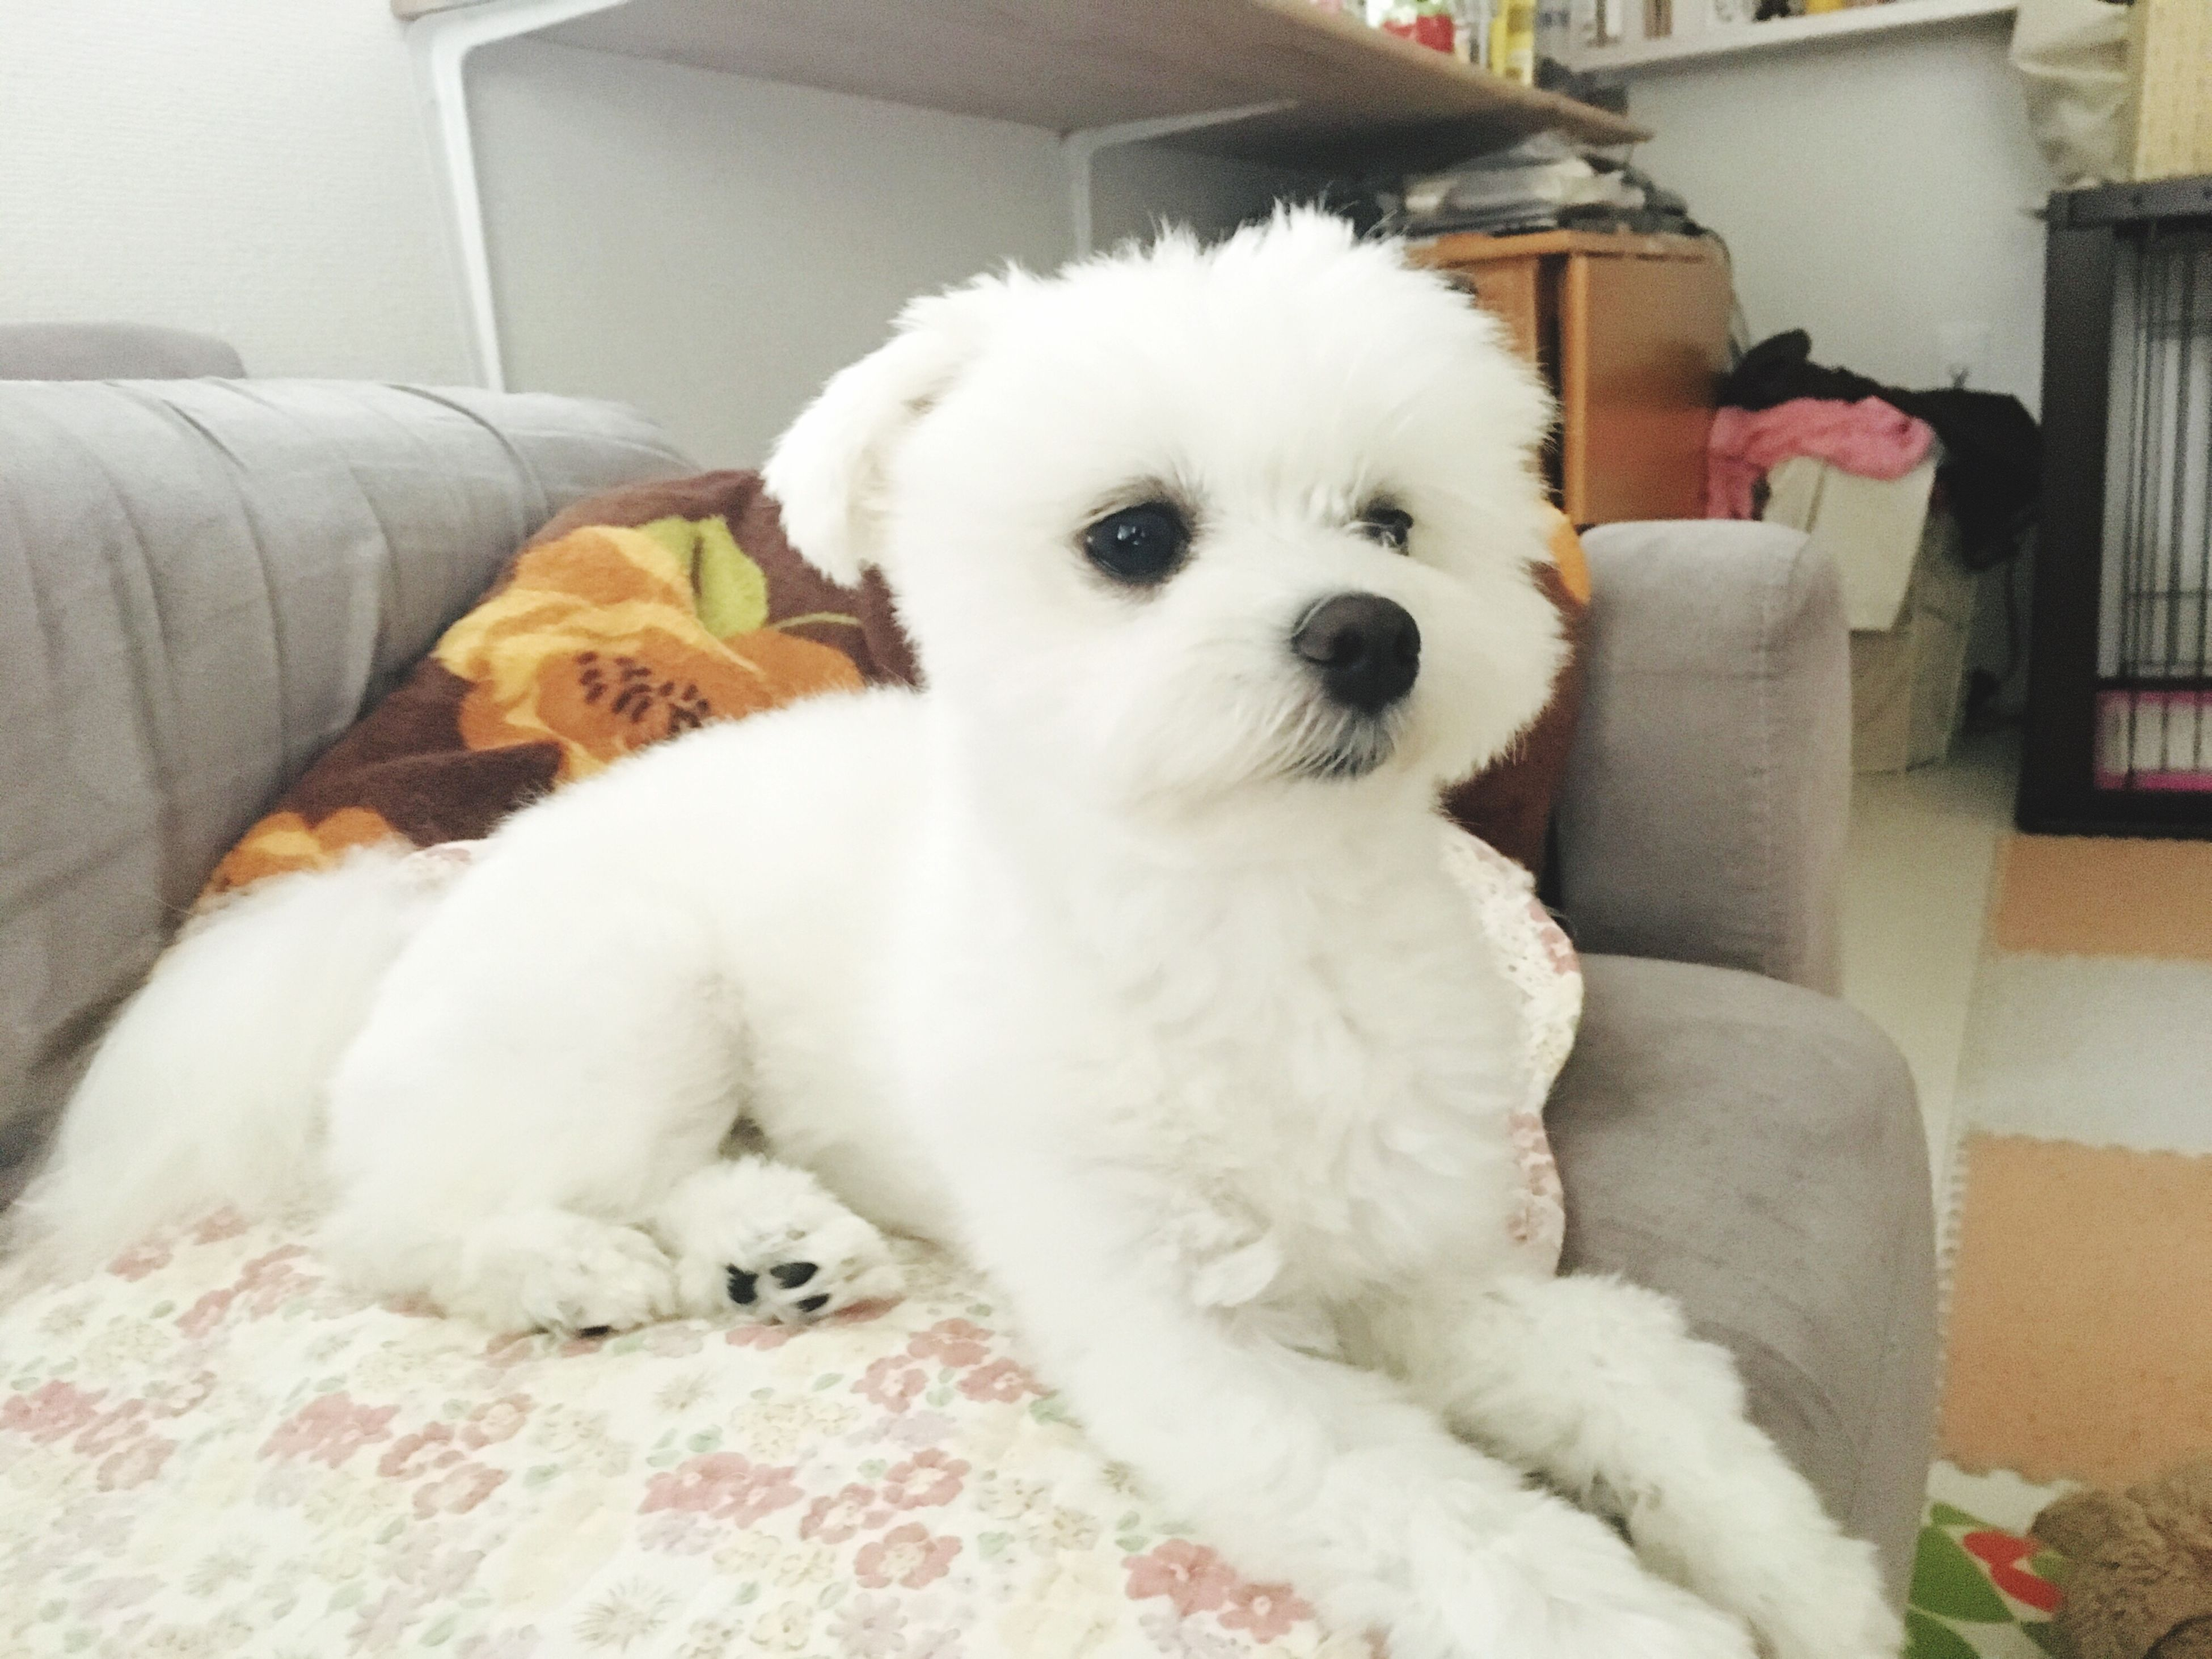 domestic animals, pets, dog, animal themes, one animal, mammal, cute, young animal, white color, relaxation, comfortable, animal head, looking, carrying, lap dog, pampered pets, fluffy, animal hair